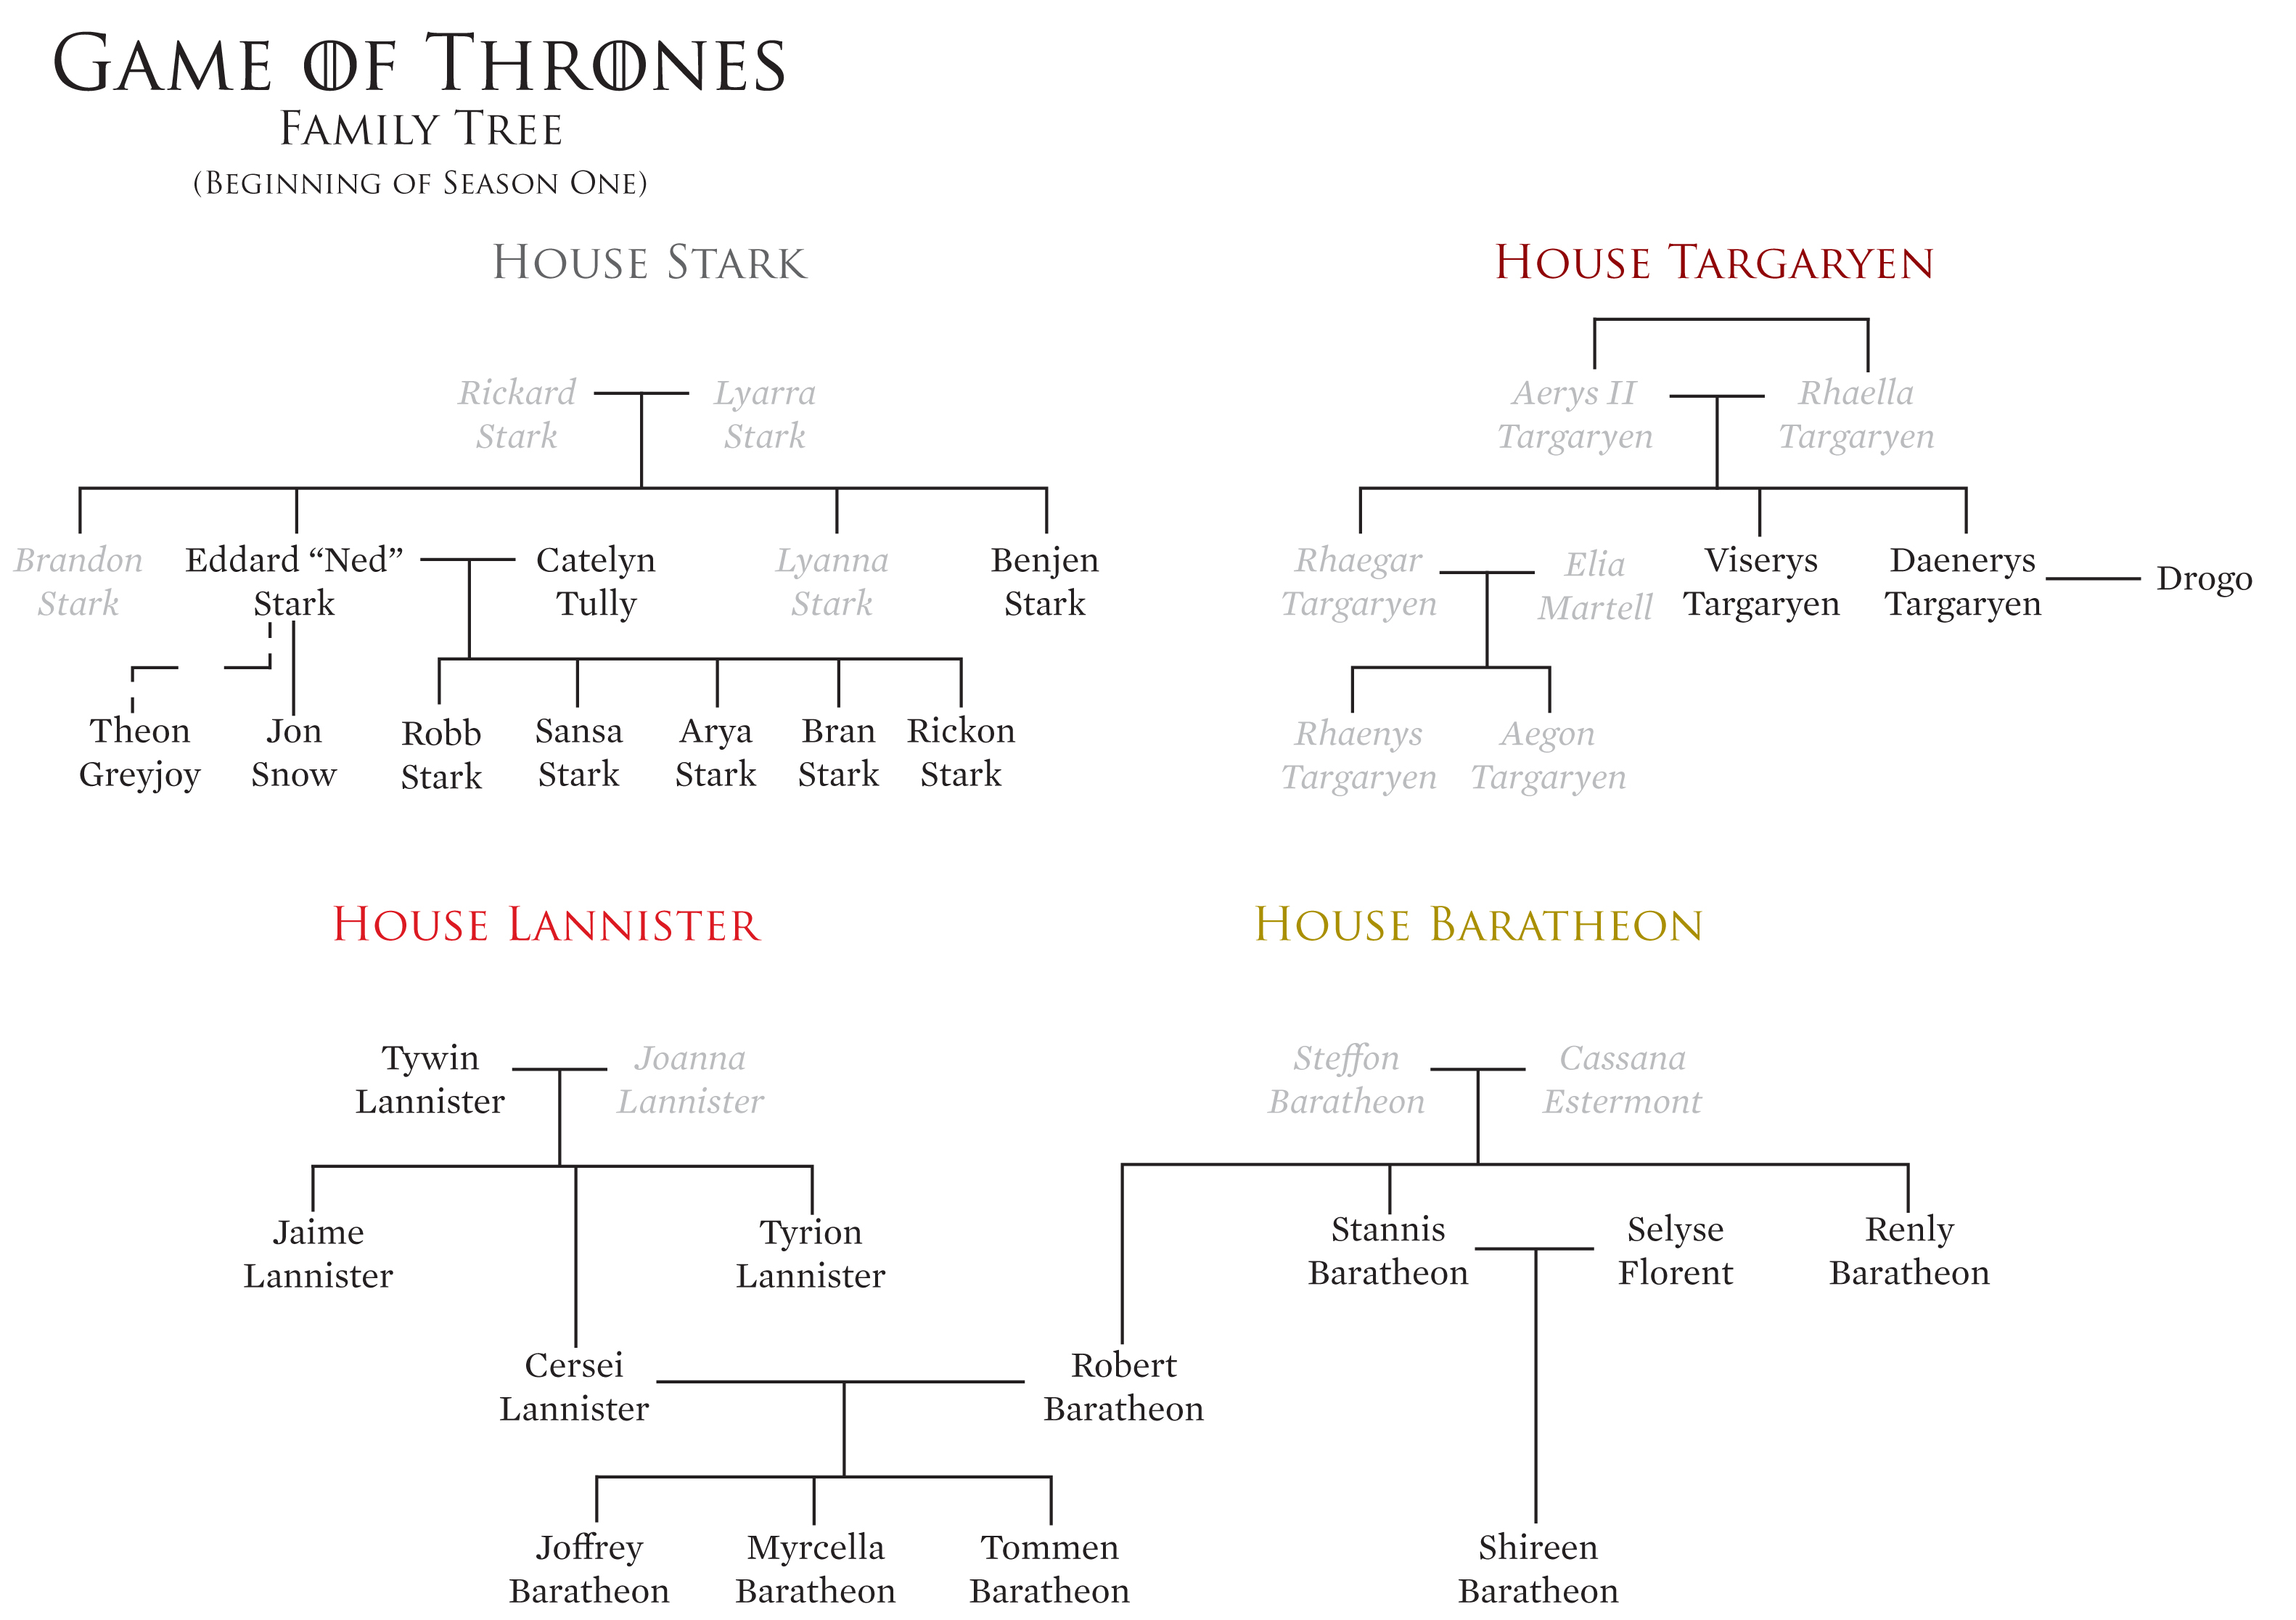 Family Tree Diagram Fire And Blood The Spoiler Free Game Of Thrones Family Tree